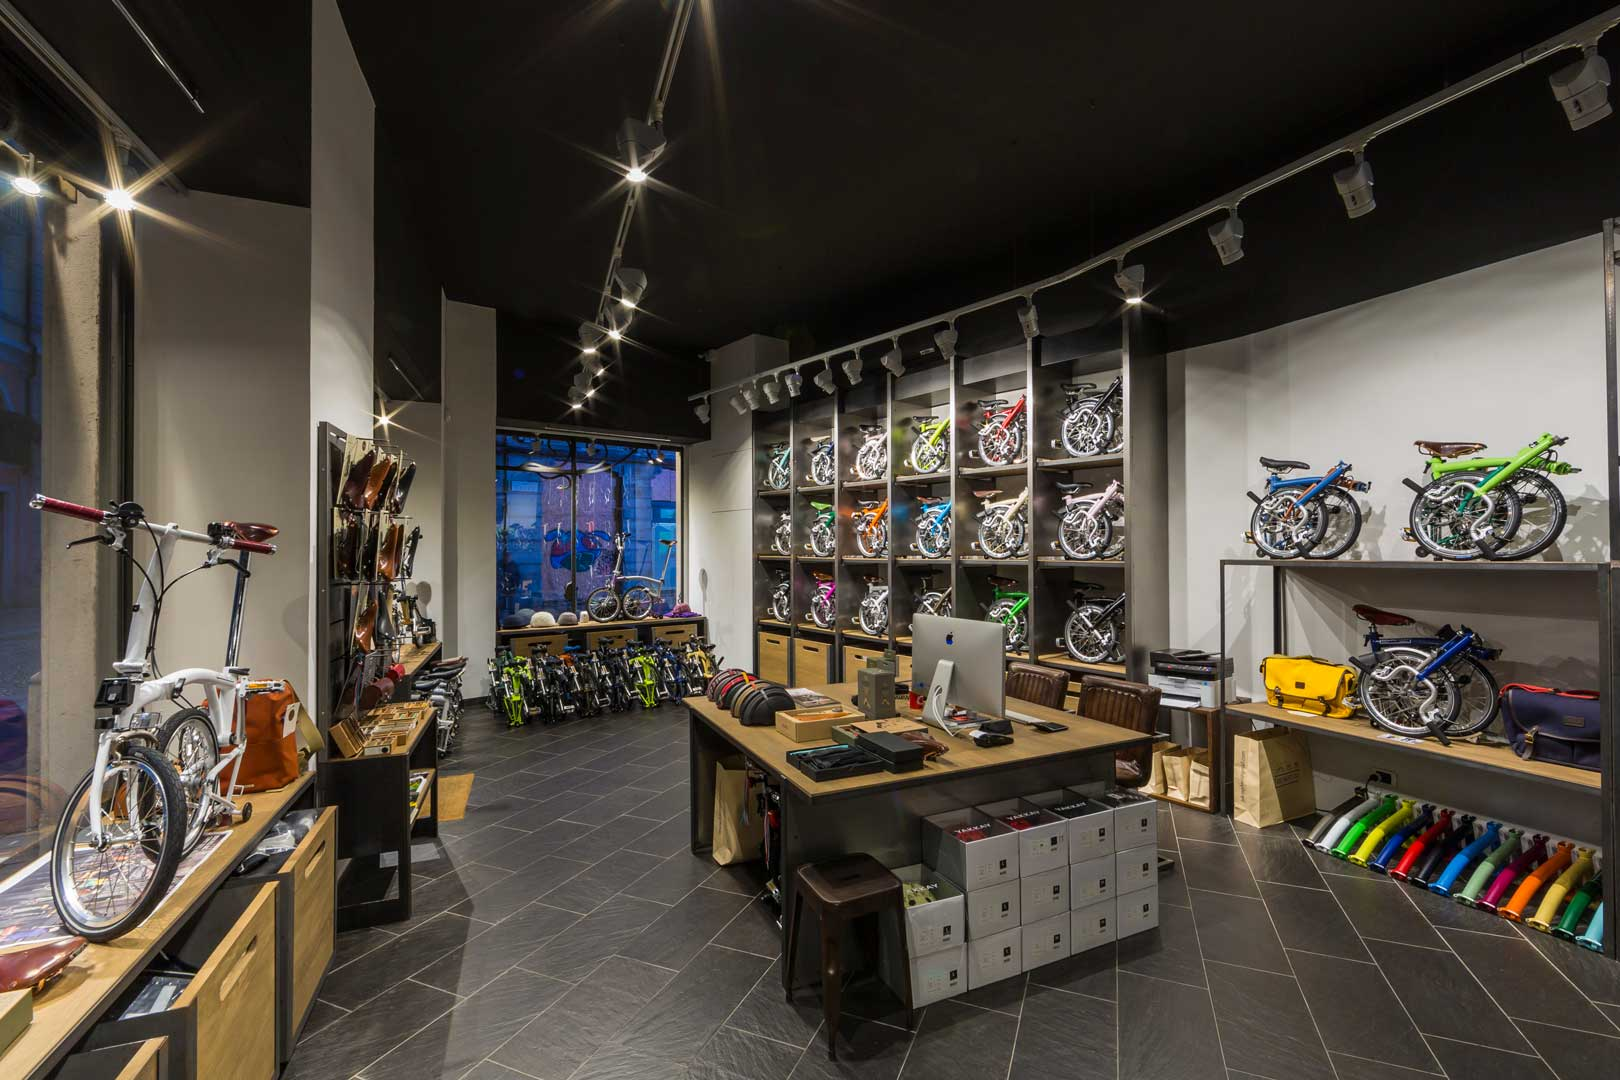 Negozi Di Design A Milano the best sports shops in milan | flawless milano